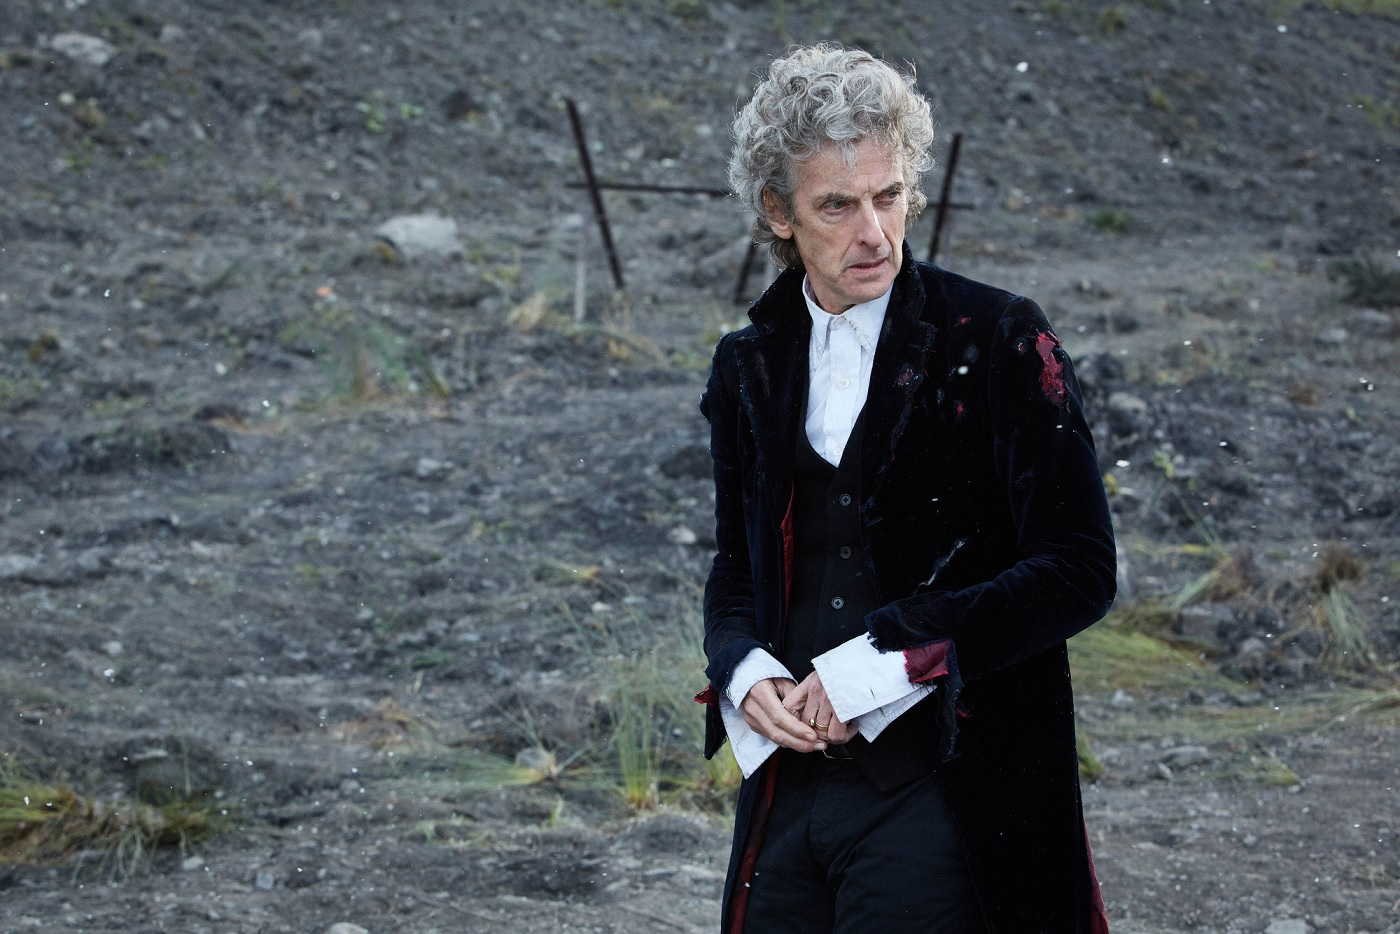 Dr Who Christmas Special.Doctor Who Christmas Special Twice Upon A Time As Buddhist